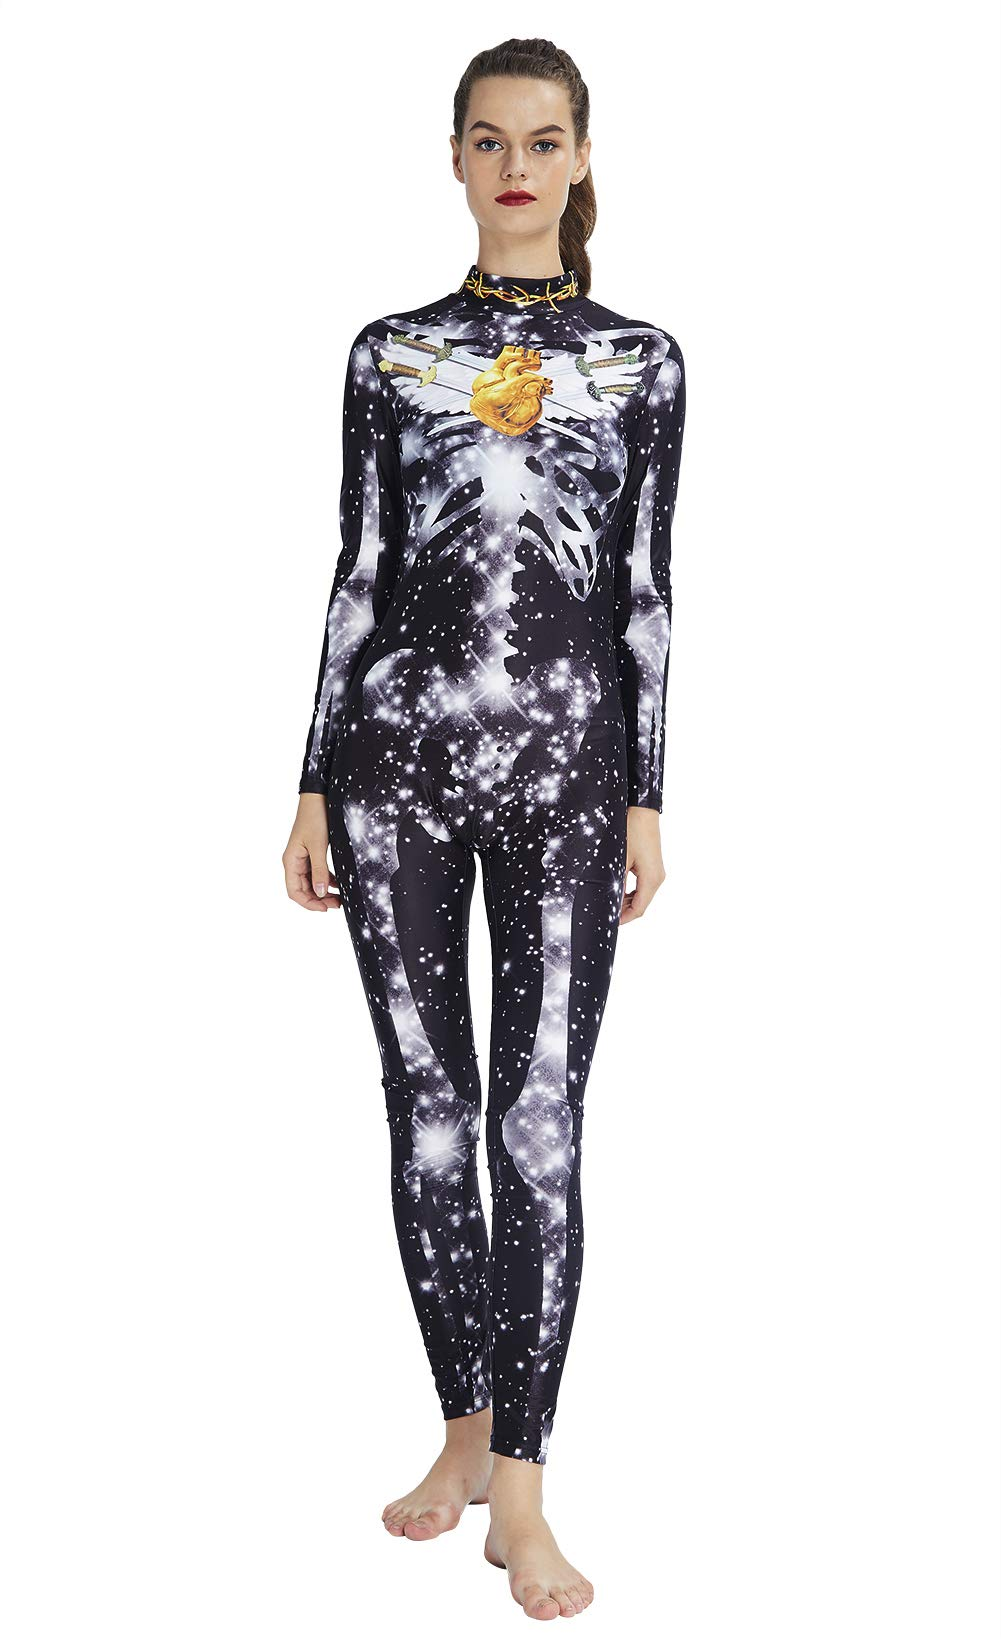 RAISEVERN Festival Clothing Black Jumpsuit Hombres Mujeres Slim Fit Starlight Skeleton Catsuits Disfraz de Halloween